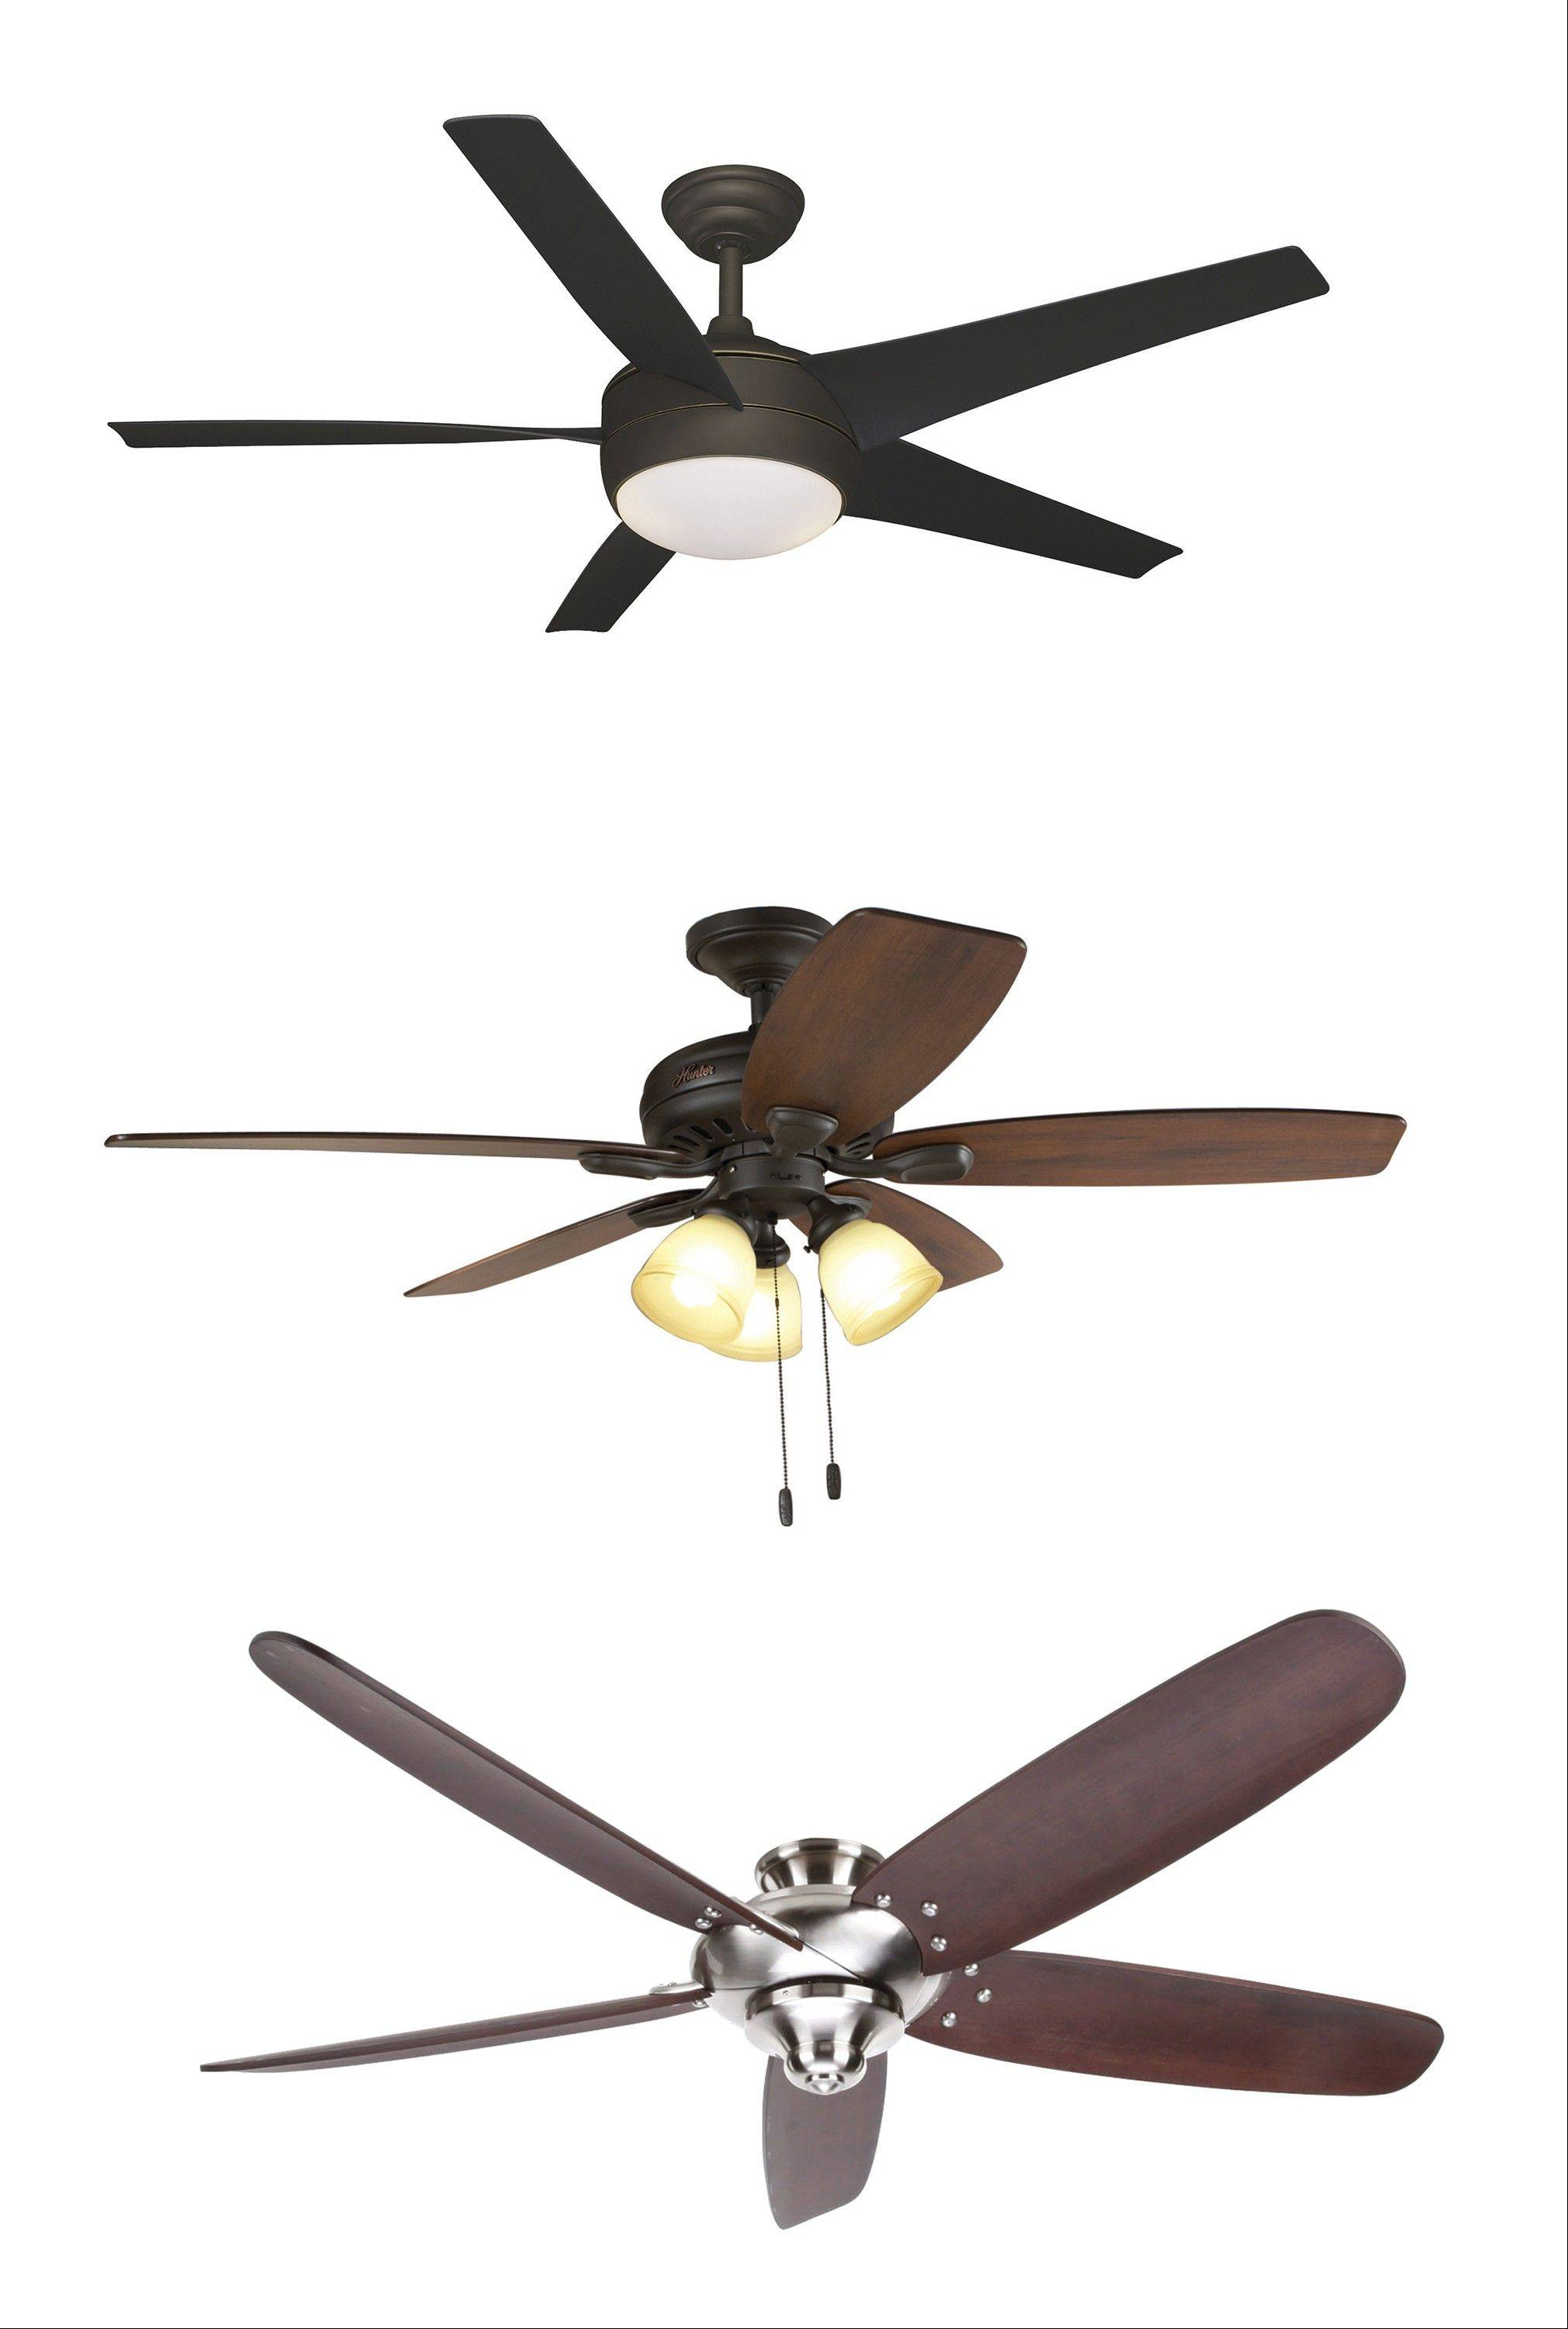 Ceiling fans can be design-conscious as well as functional. Three examples from top to bottom: Hampton Bay�s 52-inch Windward IV fan in oil-rubbed bronze; 52-inch Highbury bronze ceiling fan from Hunter; Hampton Bay�s 68-inch brushed nickel Altura.